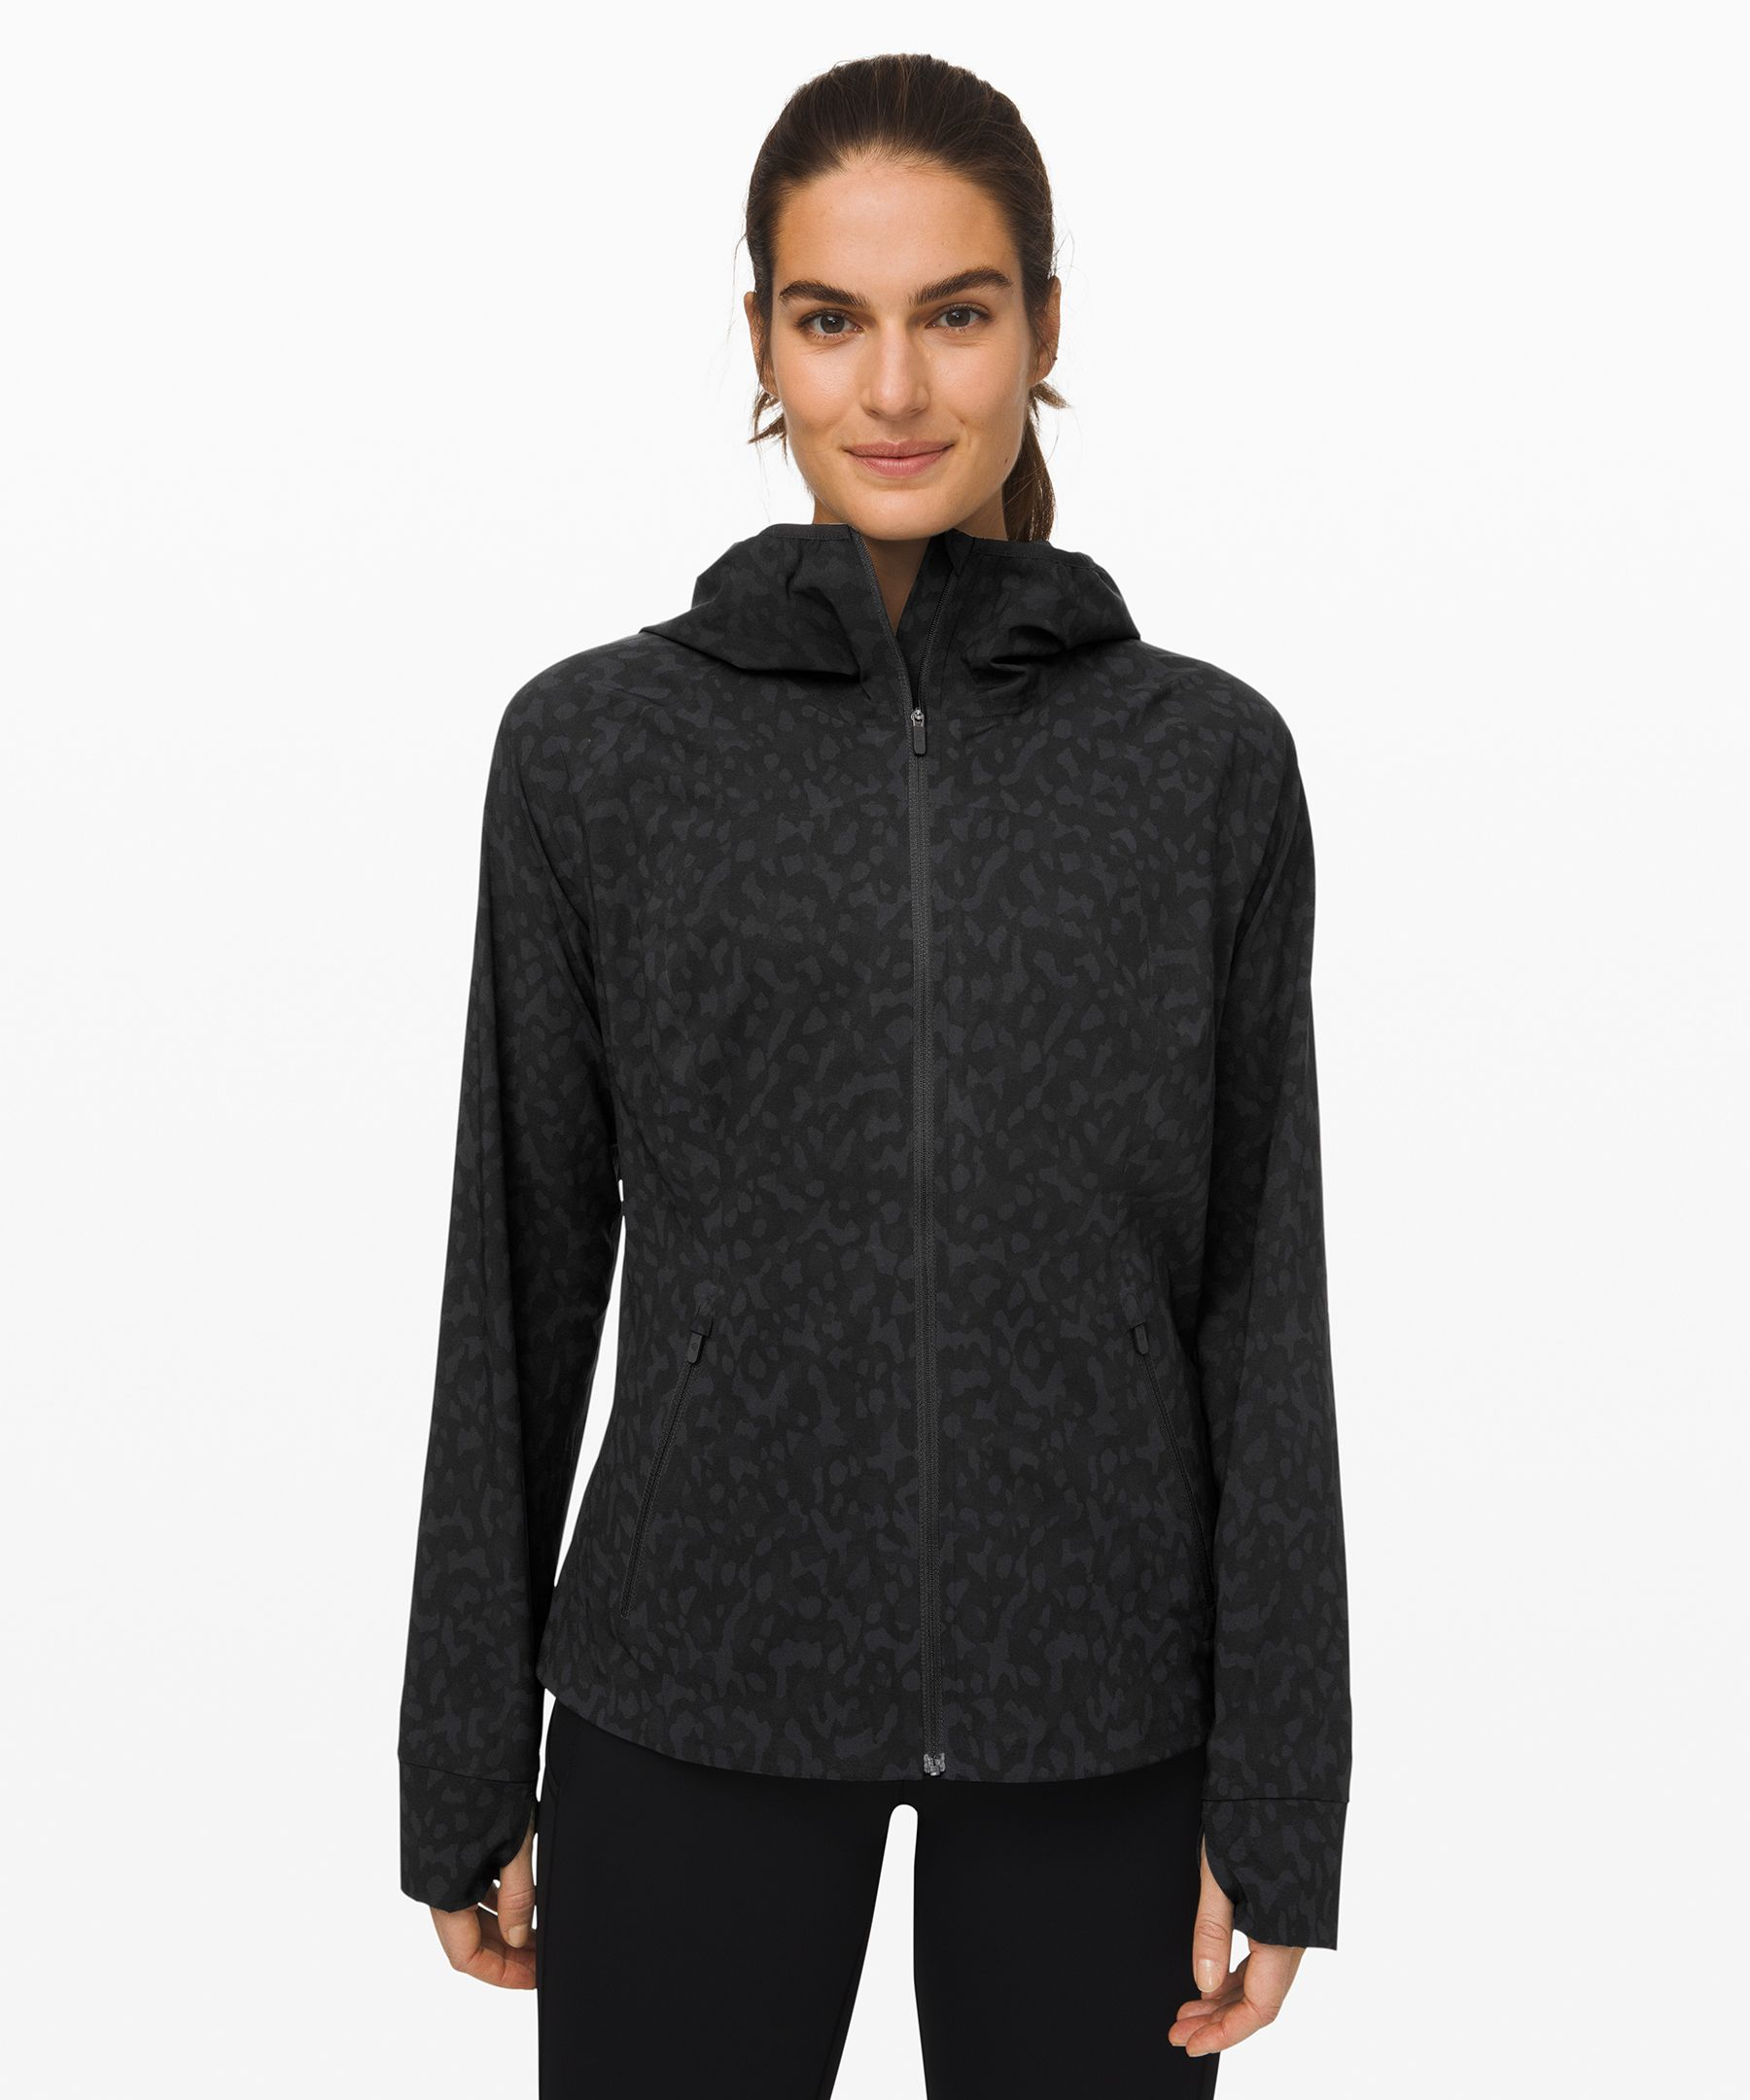 Made from DWR-treated,  four-way stretch fabric, this  versatile jacket is ideal for  rainy runs and hikes. Secure  your hood with the elastic  loop to prevent bounce when  you run. When the skies clear,  pack it into the back pocket  to create an easy-carry pouch.